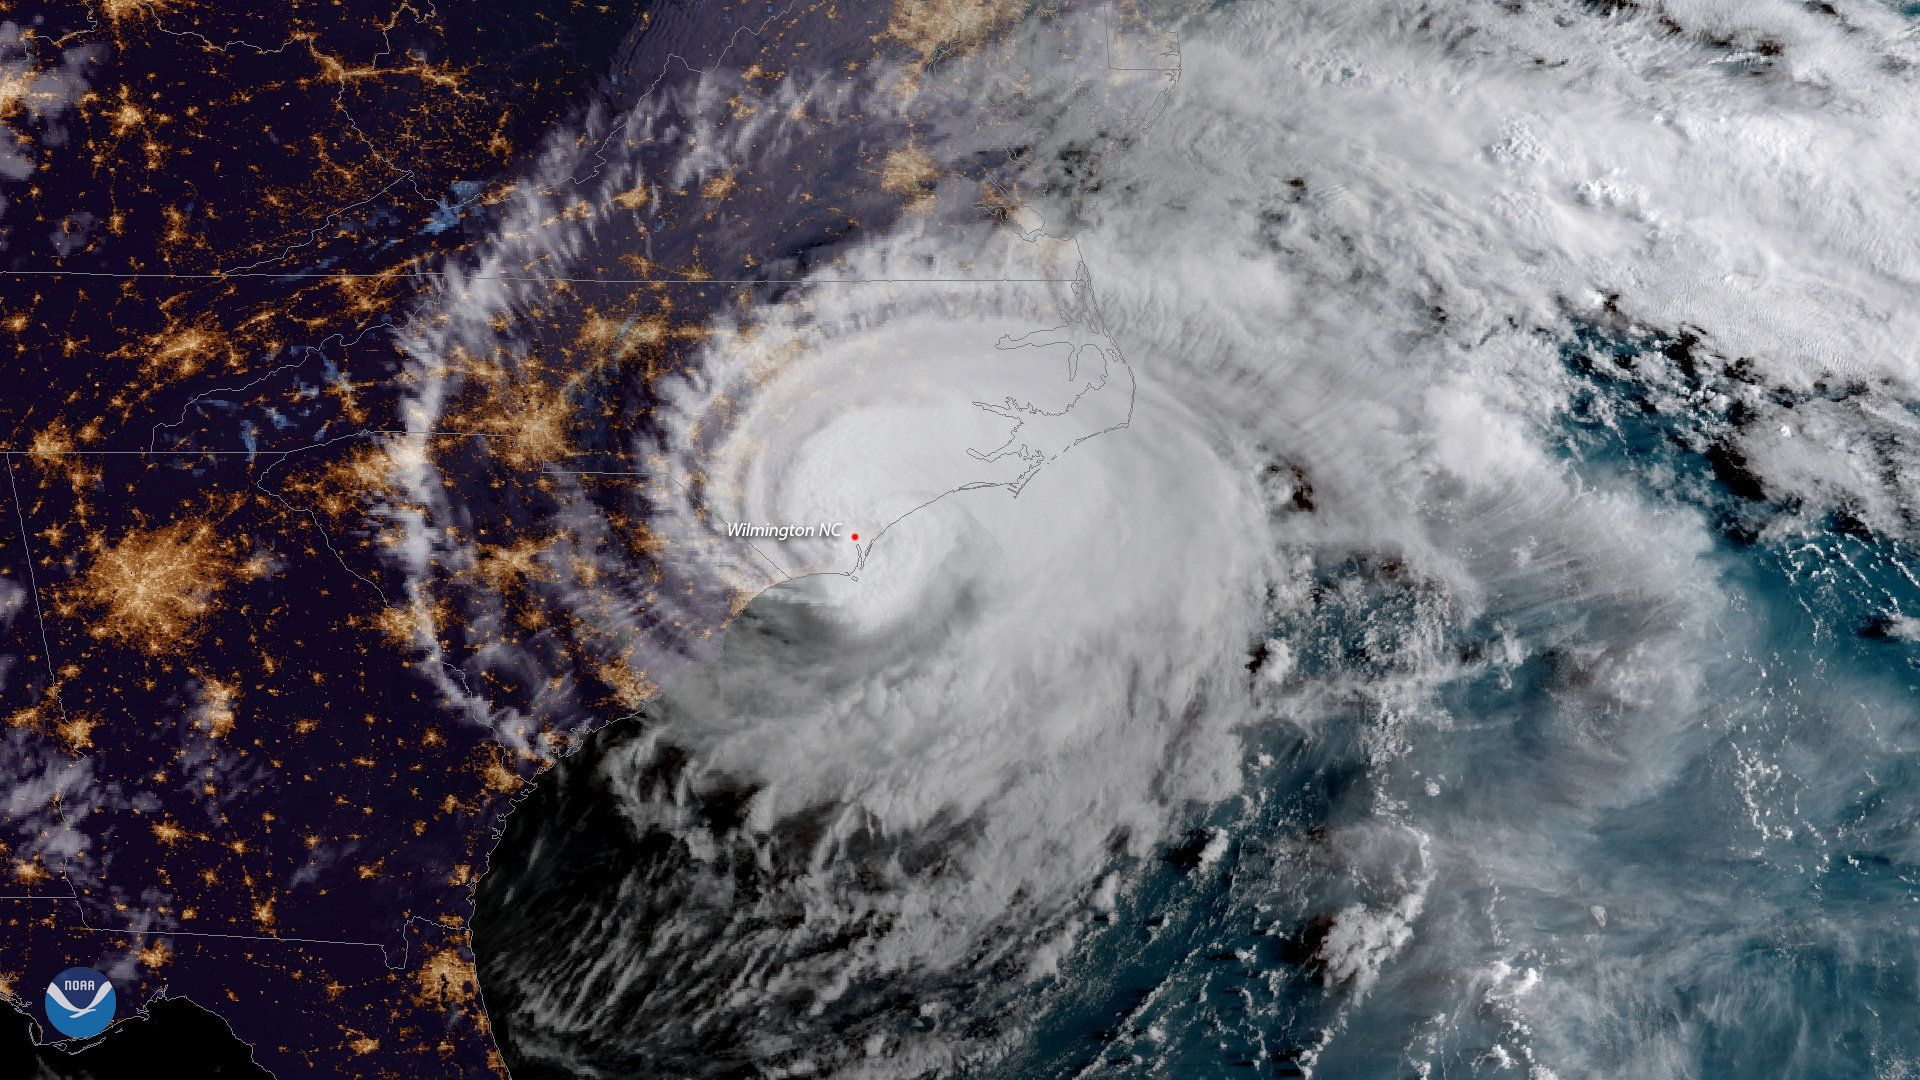 150 people trapped by Florence floodwaters in New Bern, NC